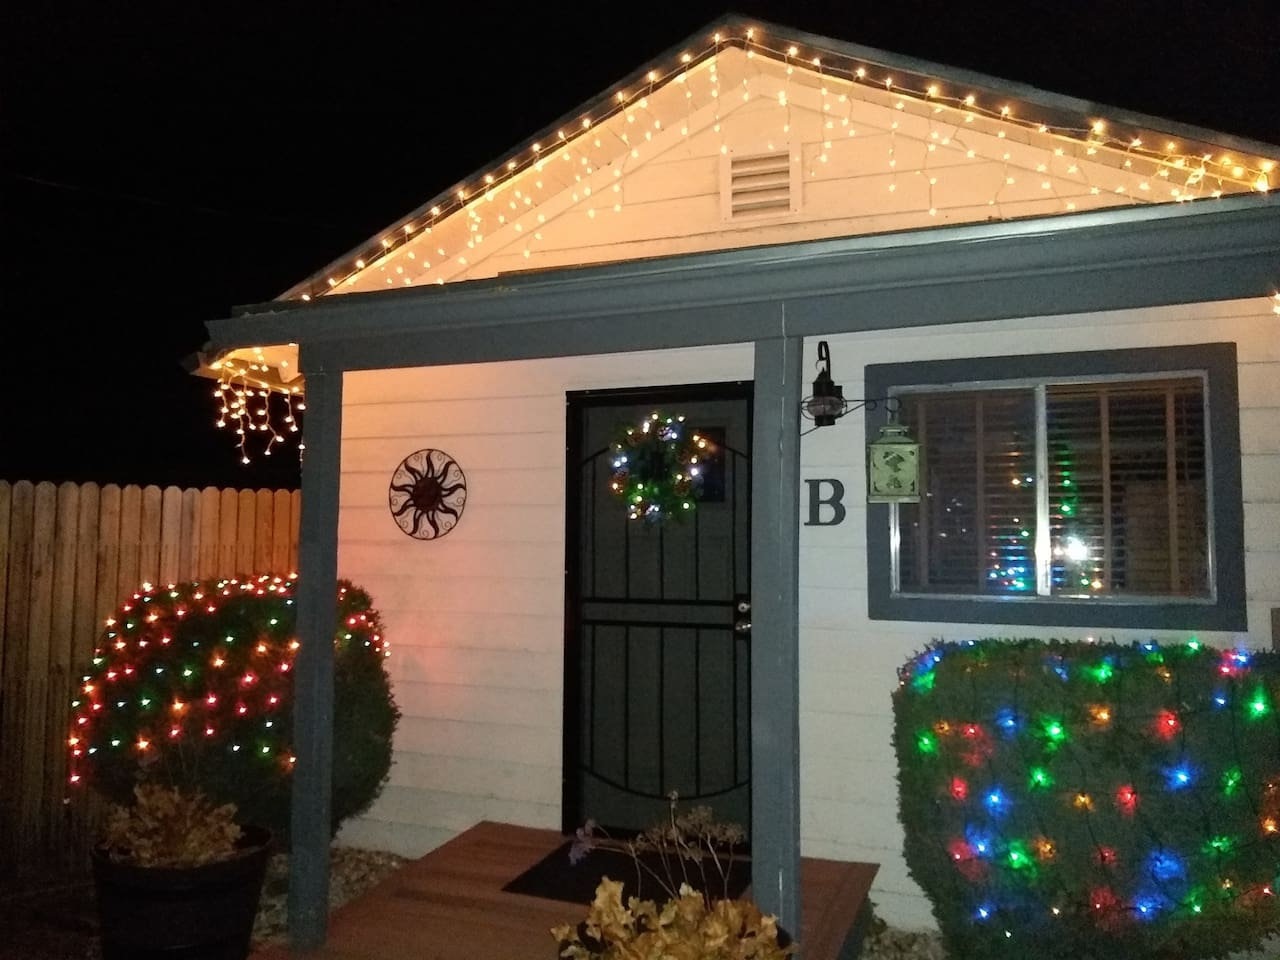 Decorated for the Holidays, inside and out.